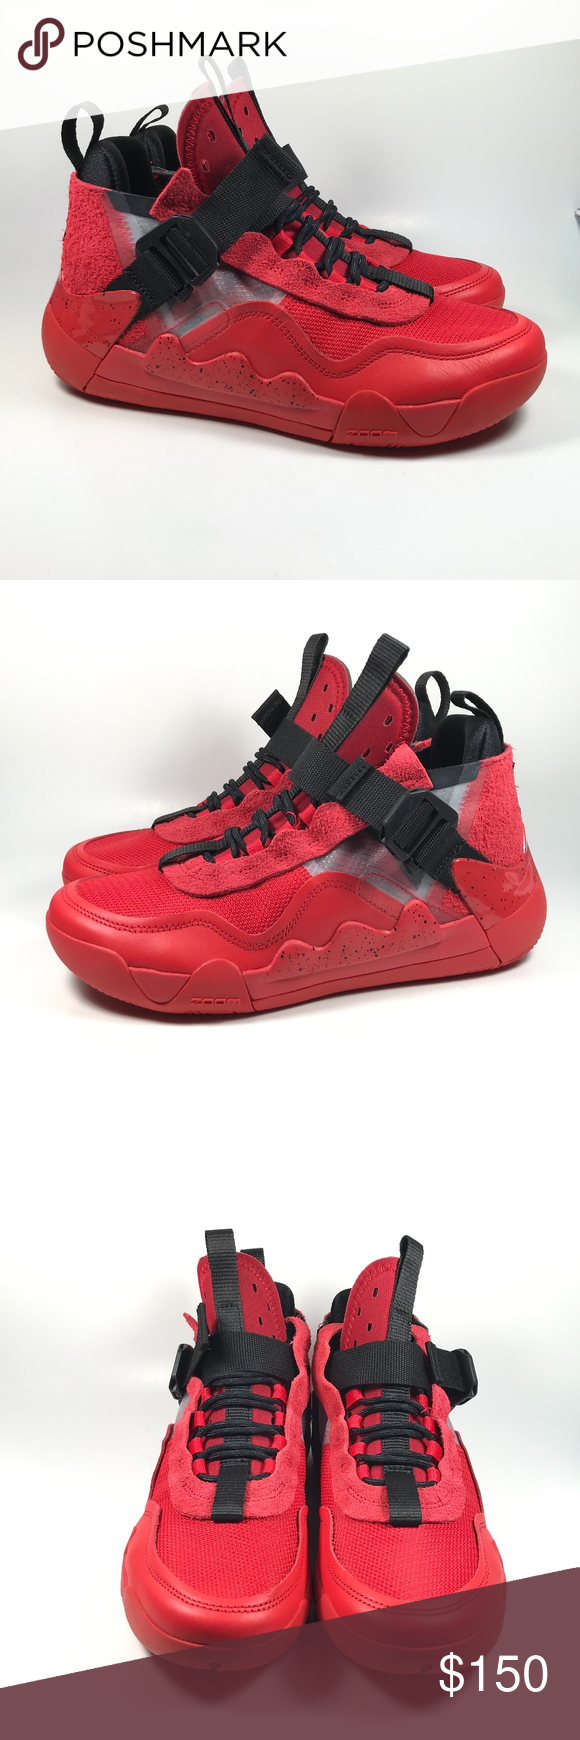 Air Jordan Defy SP Red Black Basketball Sneakers Black